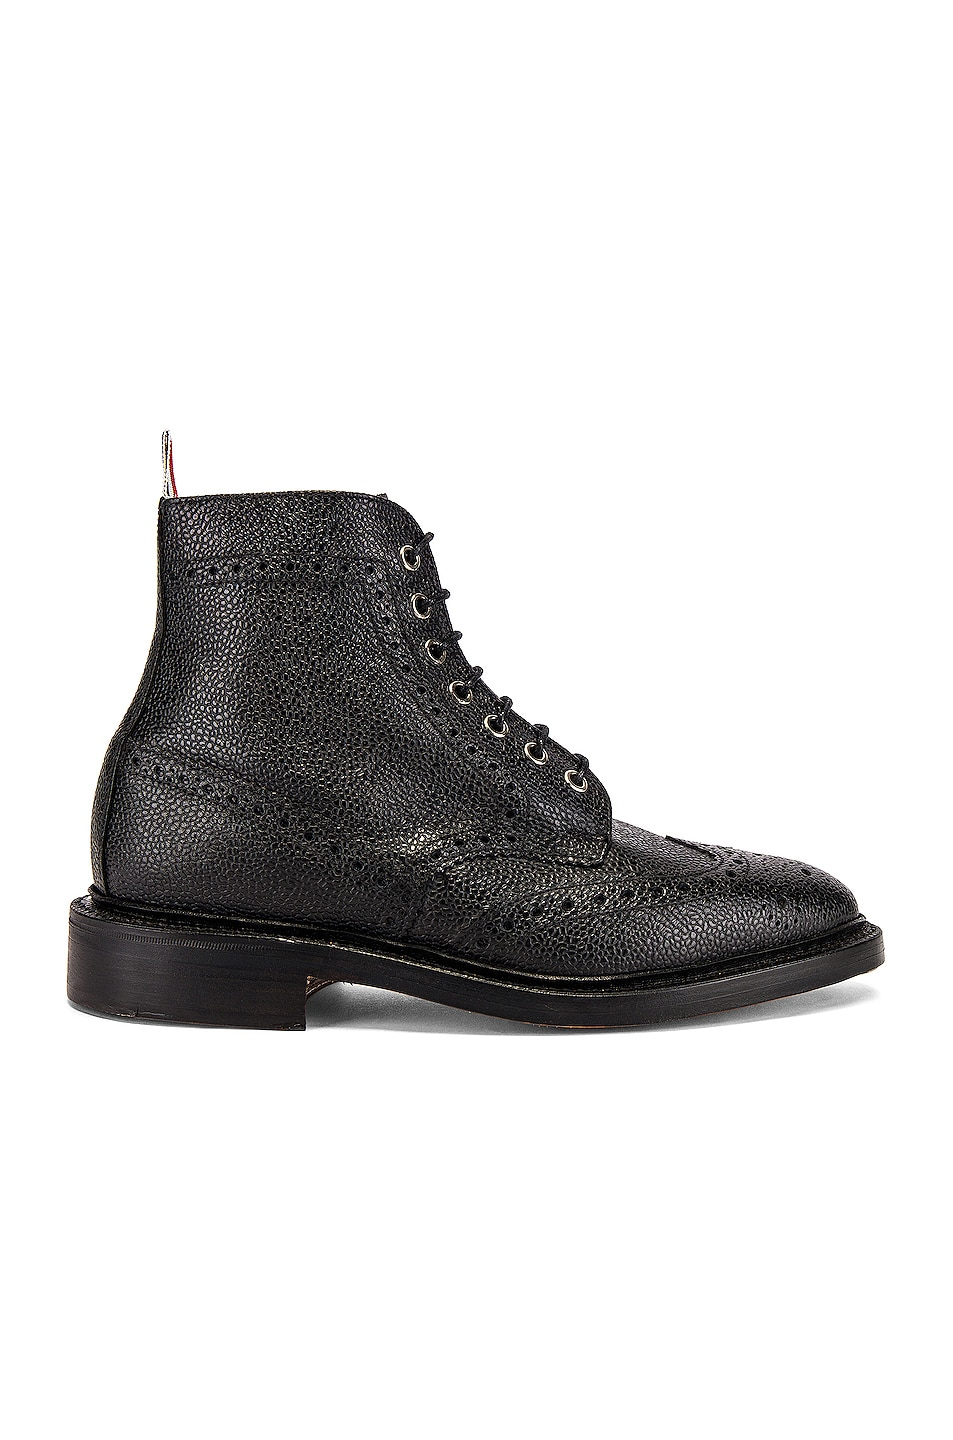 Image 1 of Thom Browne Wingtip Leather Boots in Black